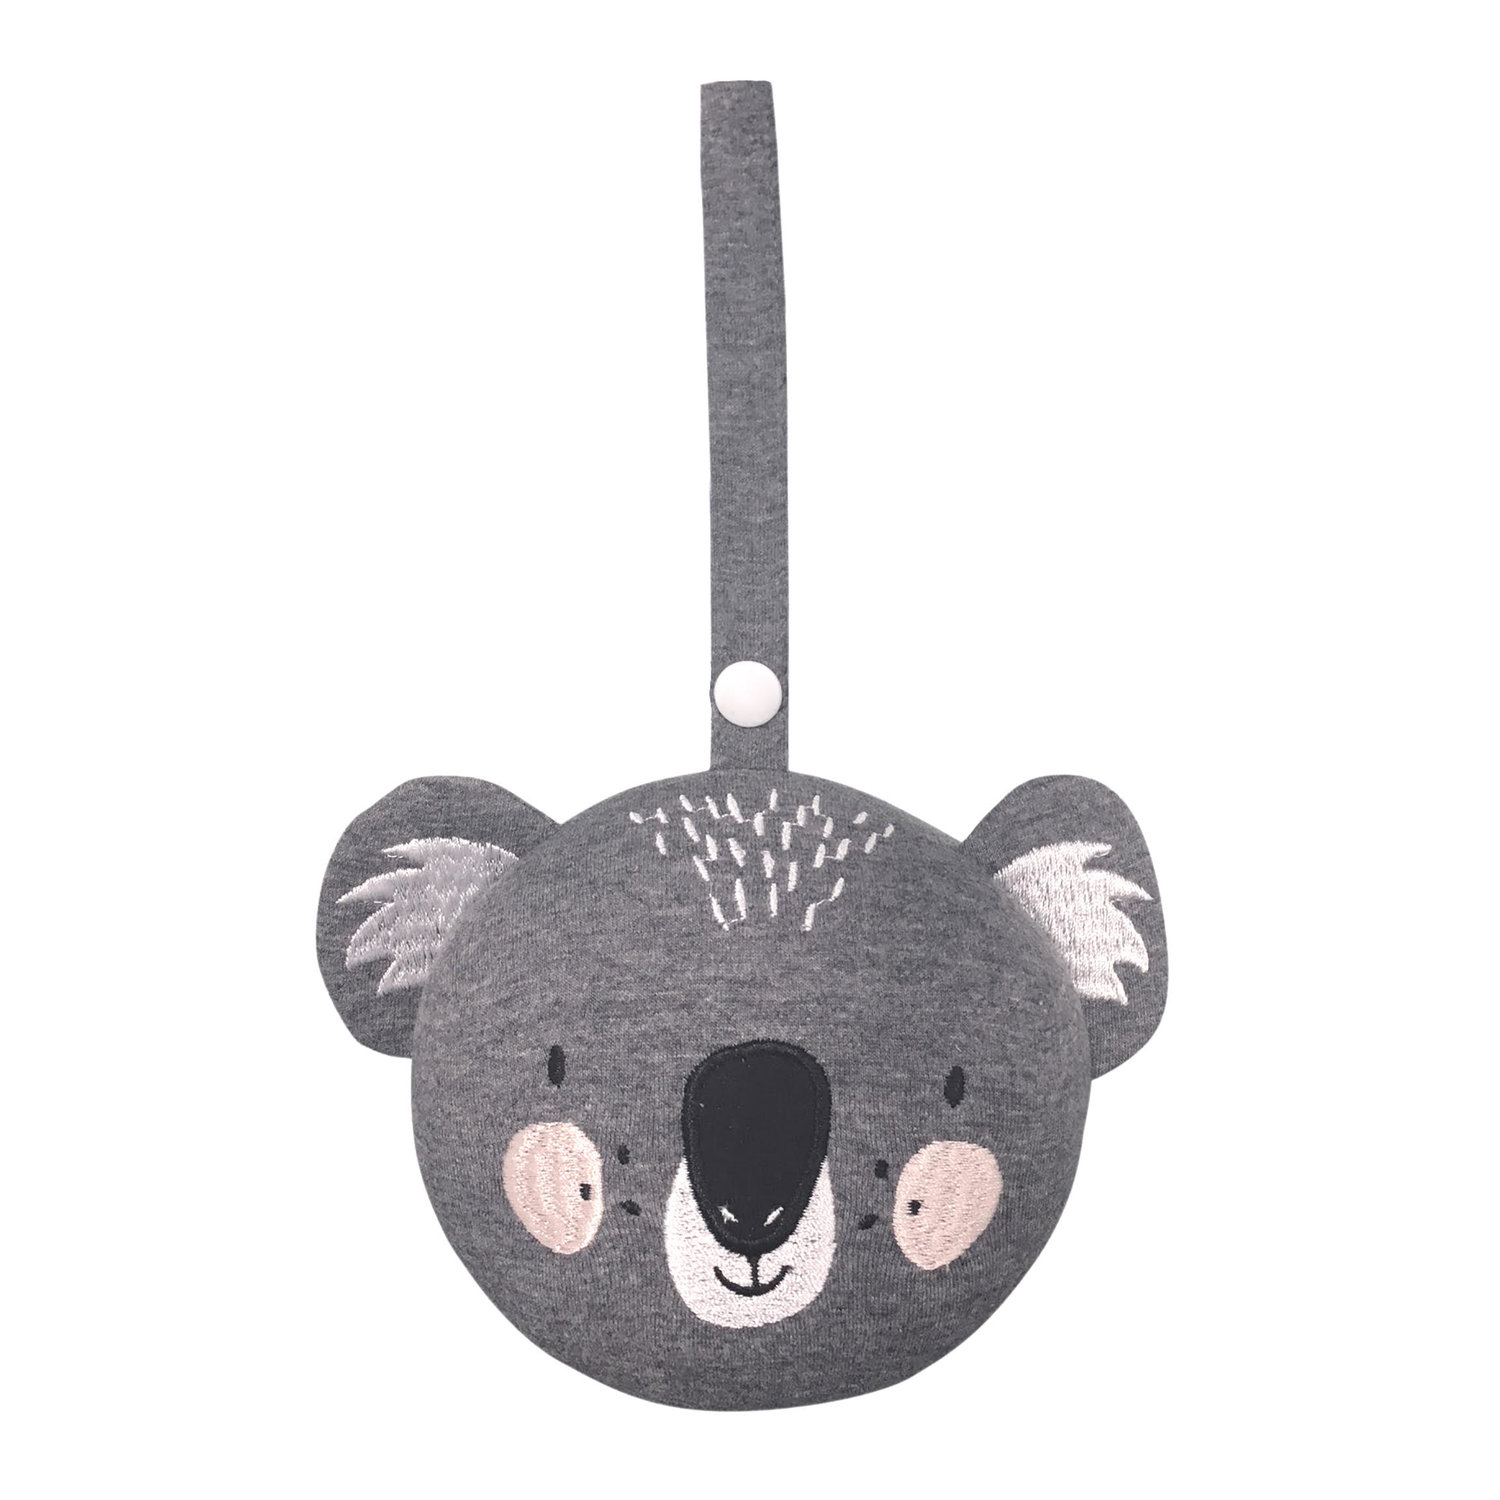 Mister Fly Koala Pram Rattle Ball